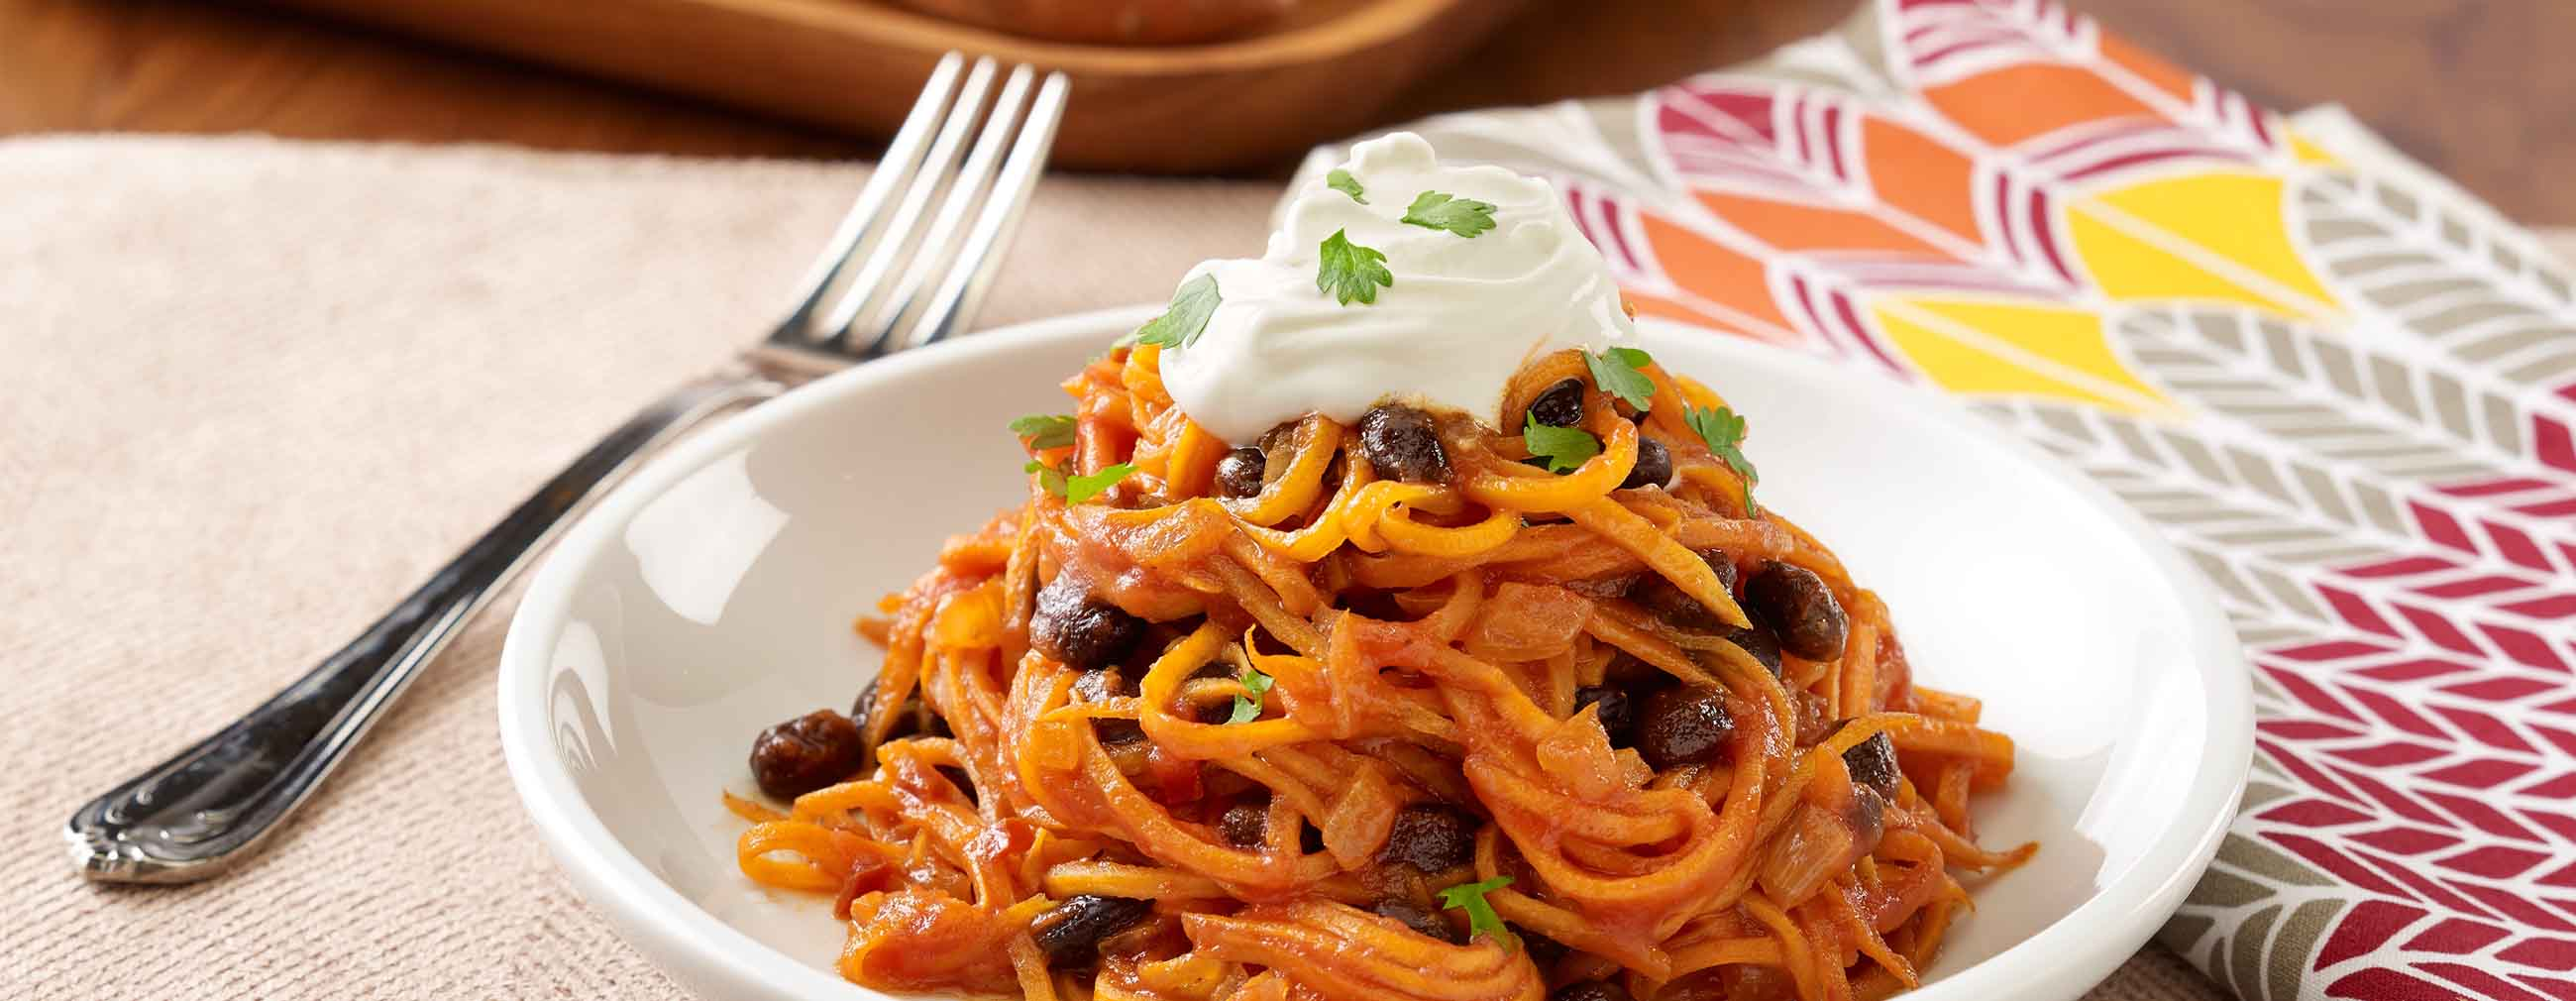 Chipotle Sweet Potato Noodles